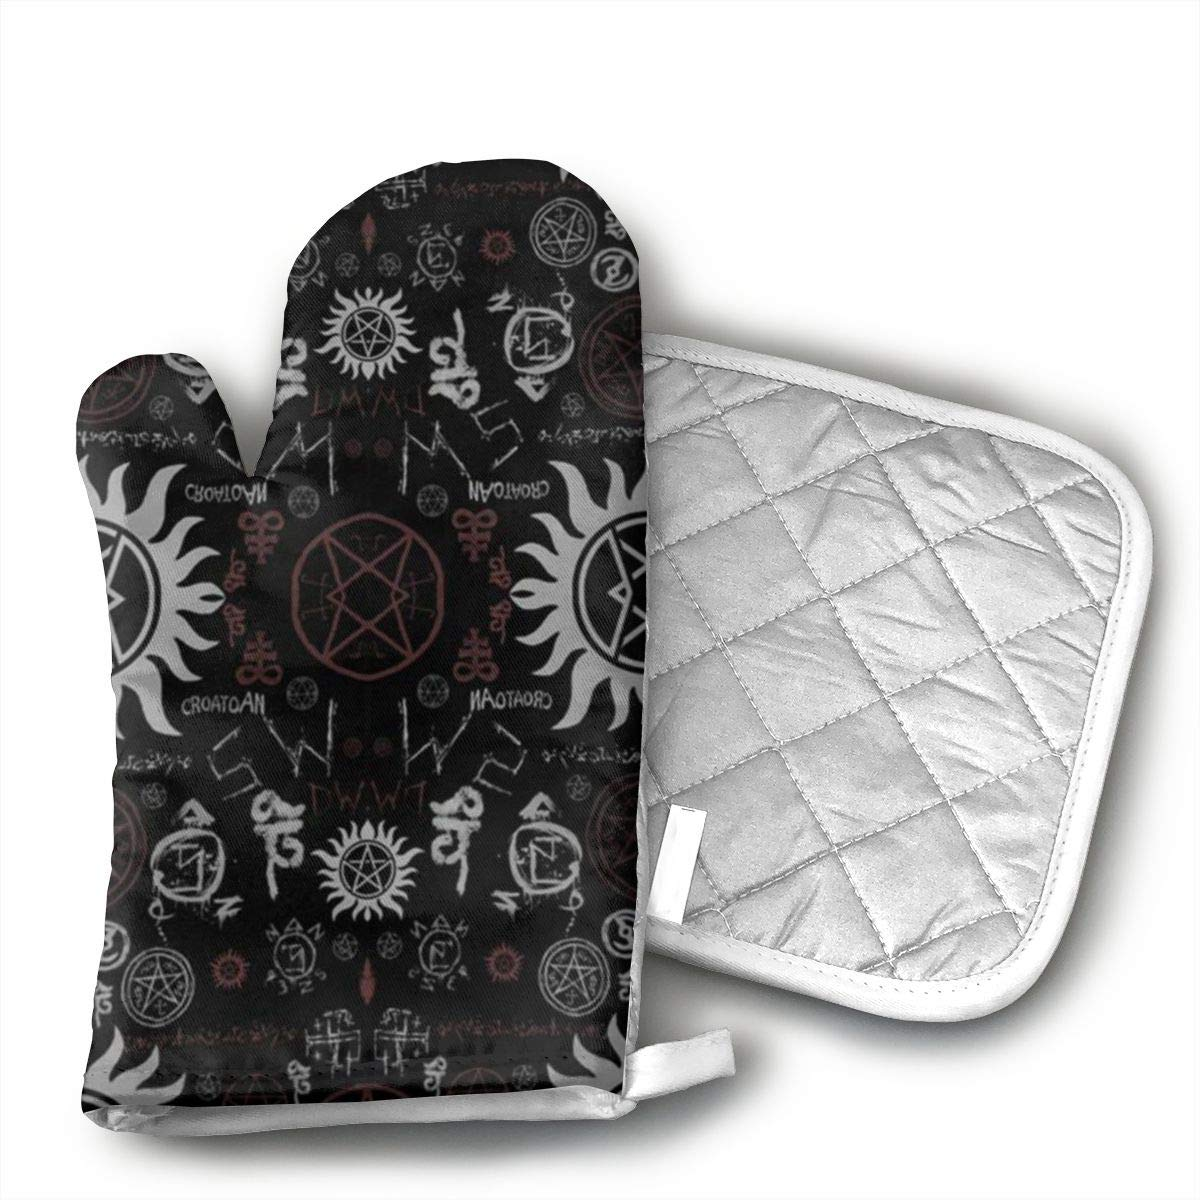 Supernatural Symbols Black Oven Mitts, Heat Resistant Cooking Glove Quilted Cotton Lining- Heat Resistant Pot Holder Gloves for Grilling & Baking Gloves BBQ Oven Gloves Kitchen Tools Gift